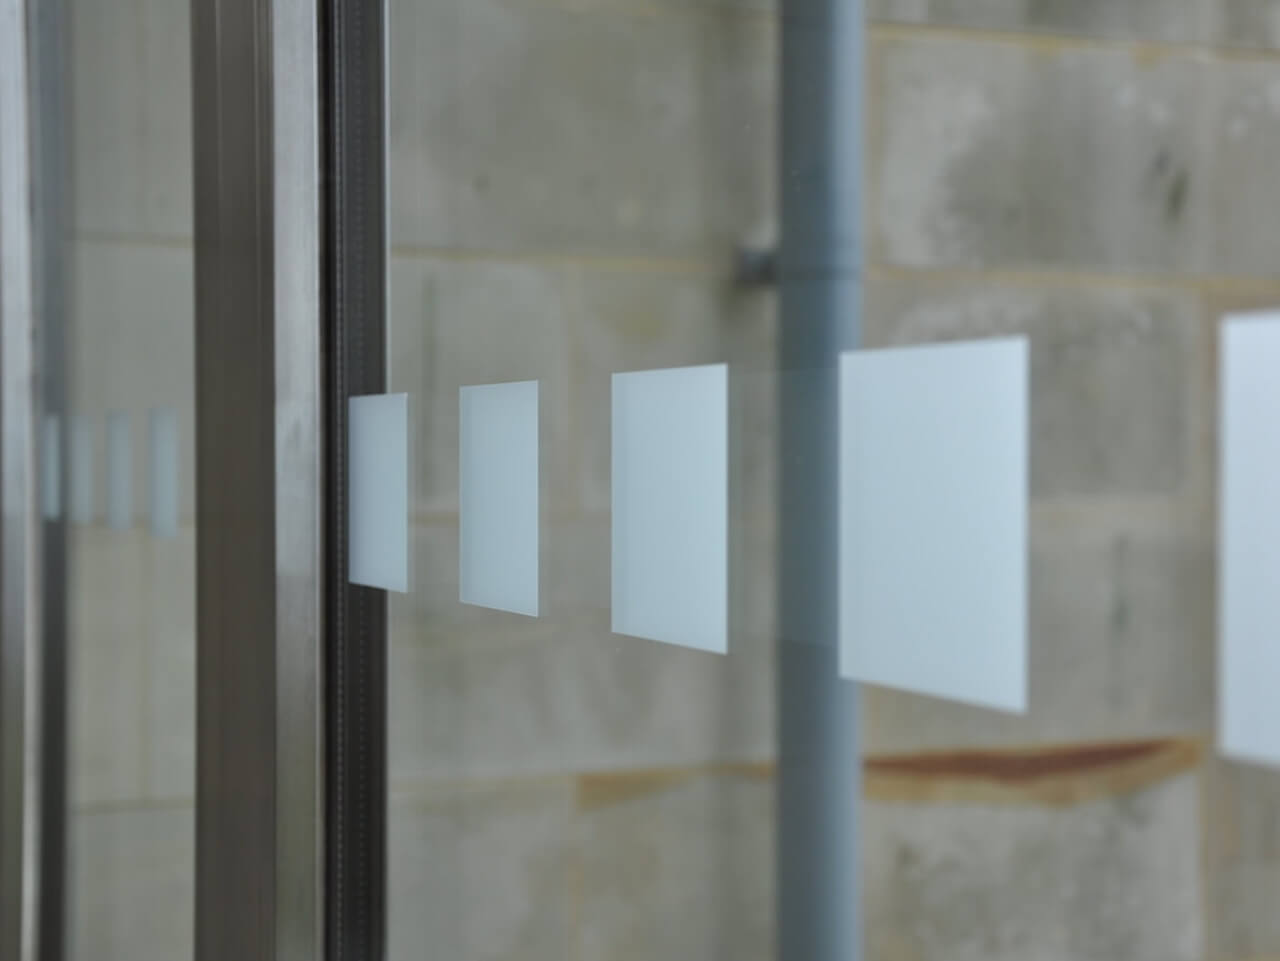 Frosted squre window manifestations on full size window panels at St Columba's Hospice